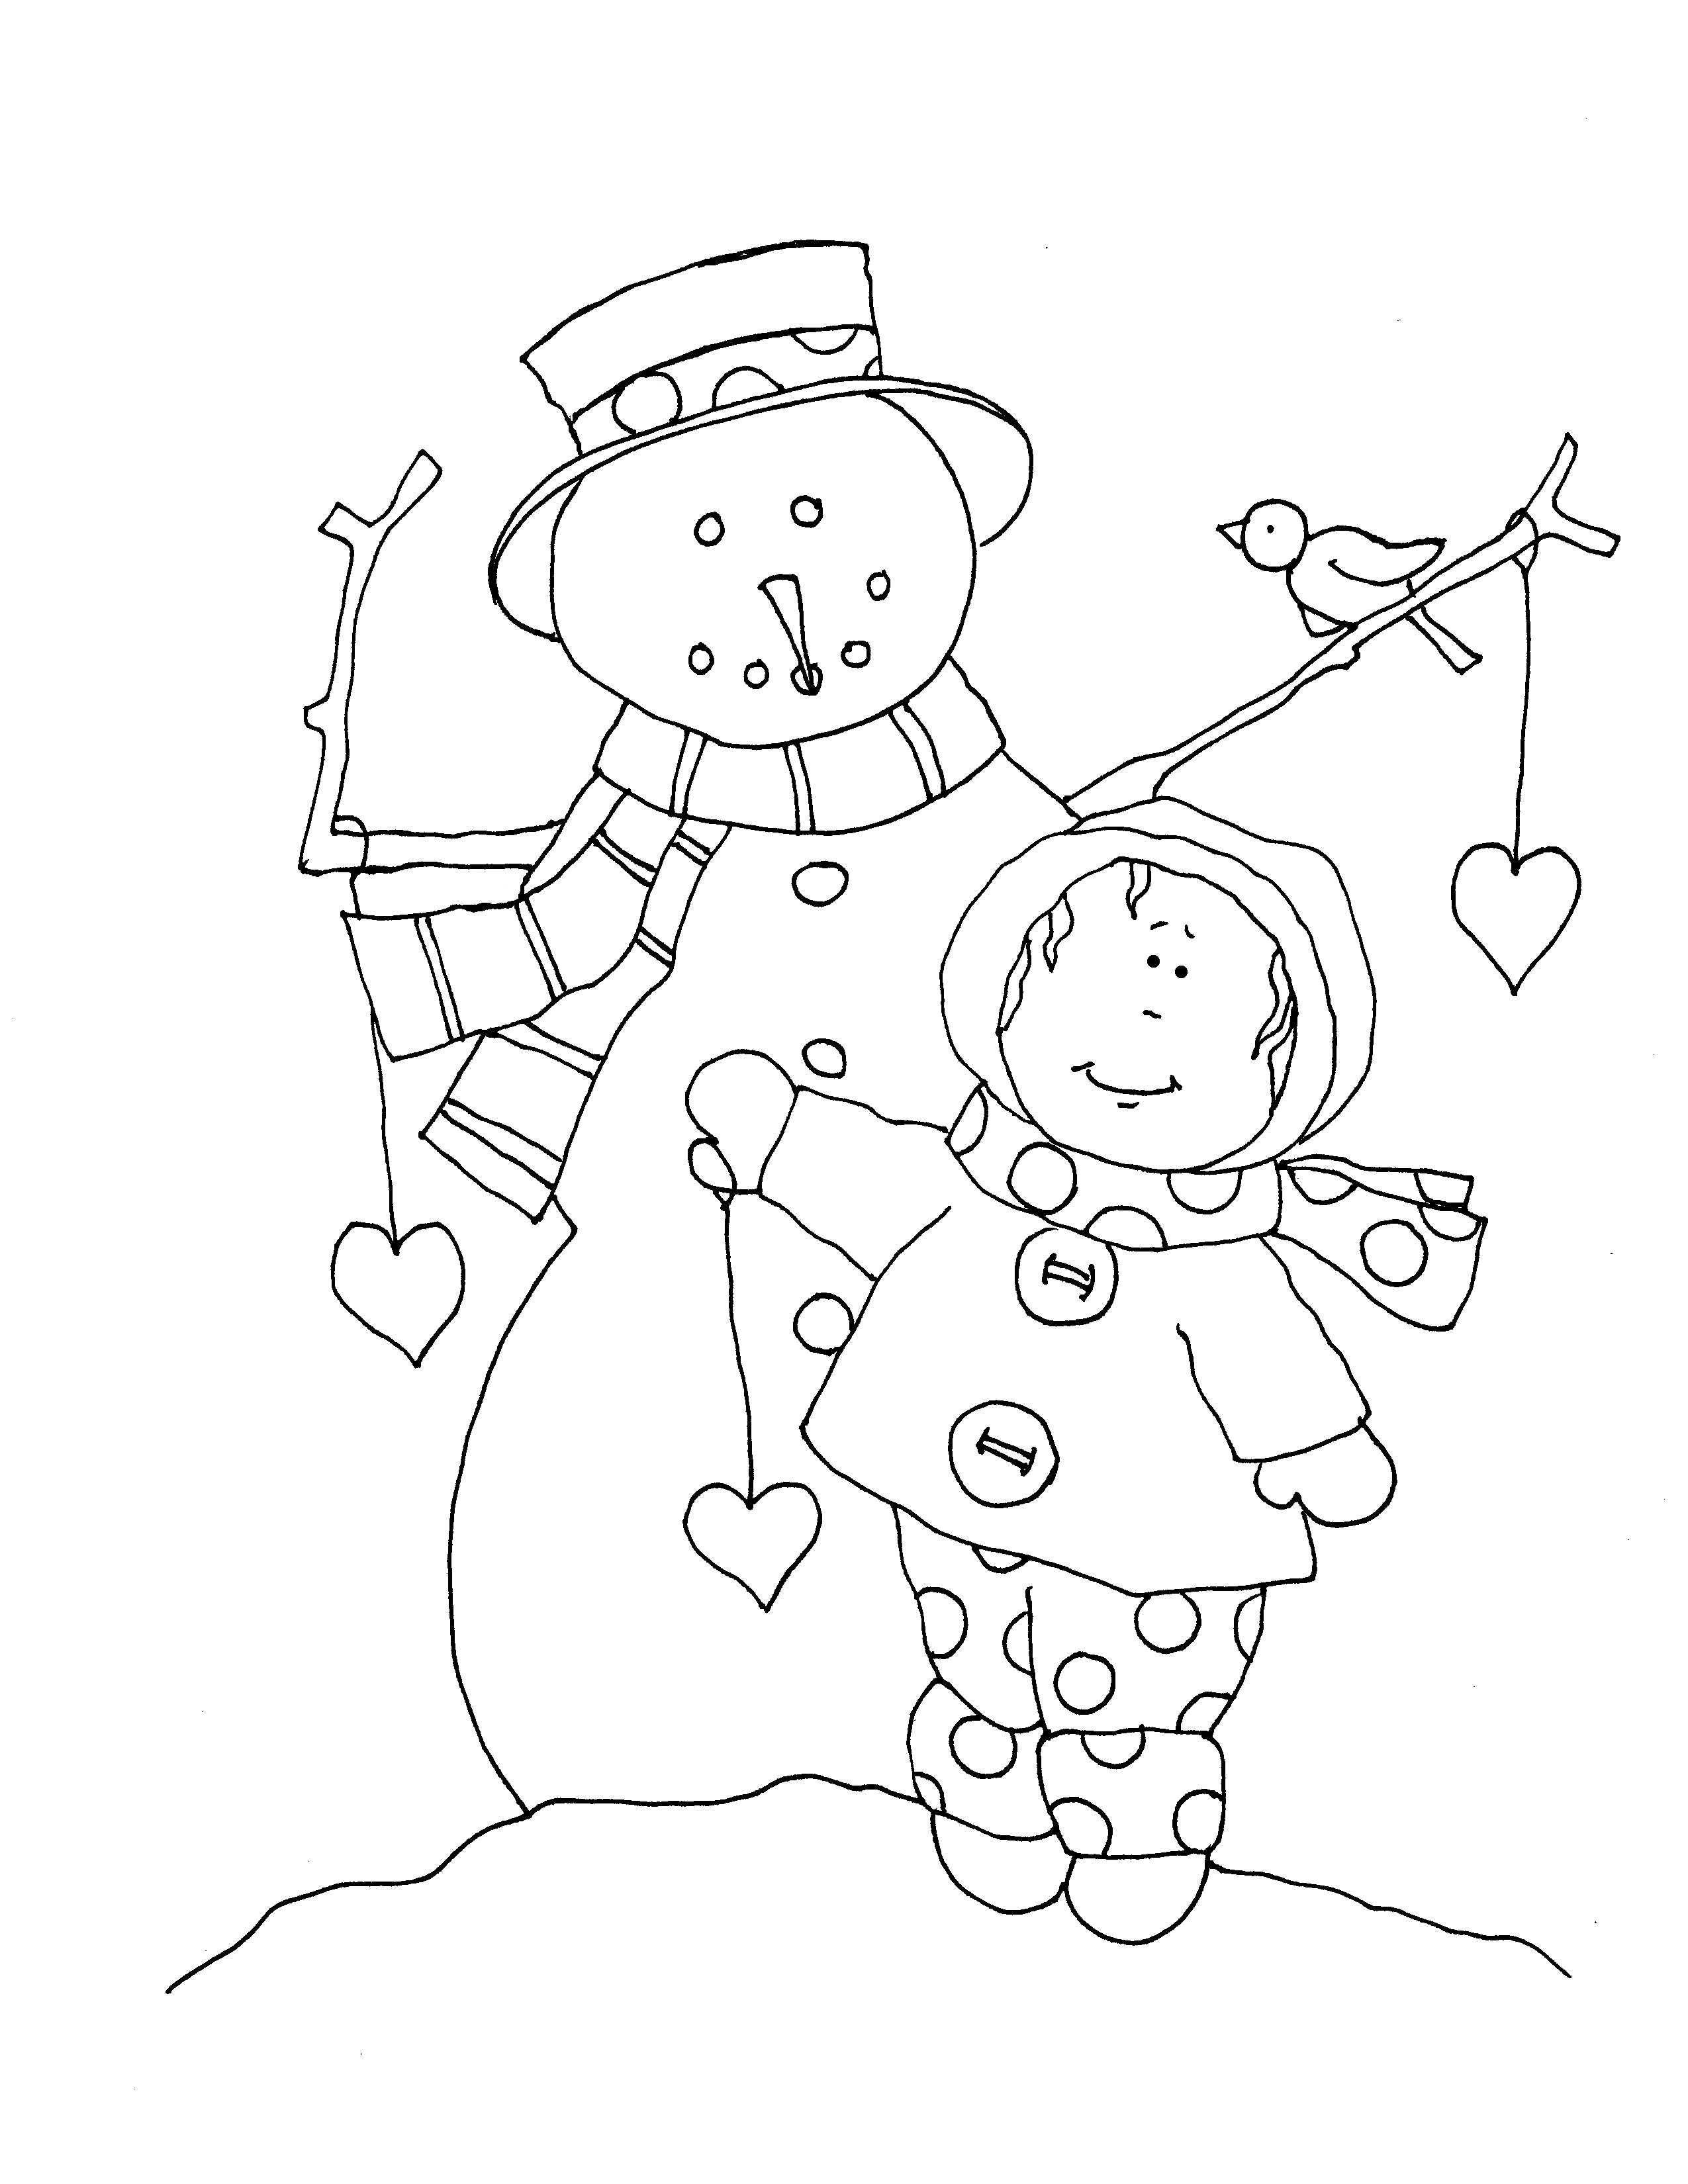 Snowman and little girl Dearie Dolls Digi Stamps Graphic